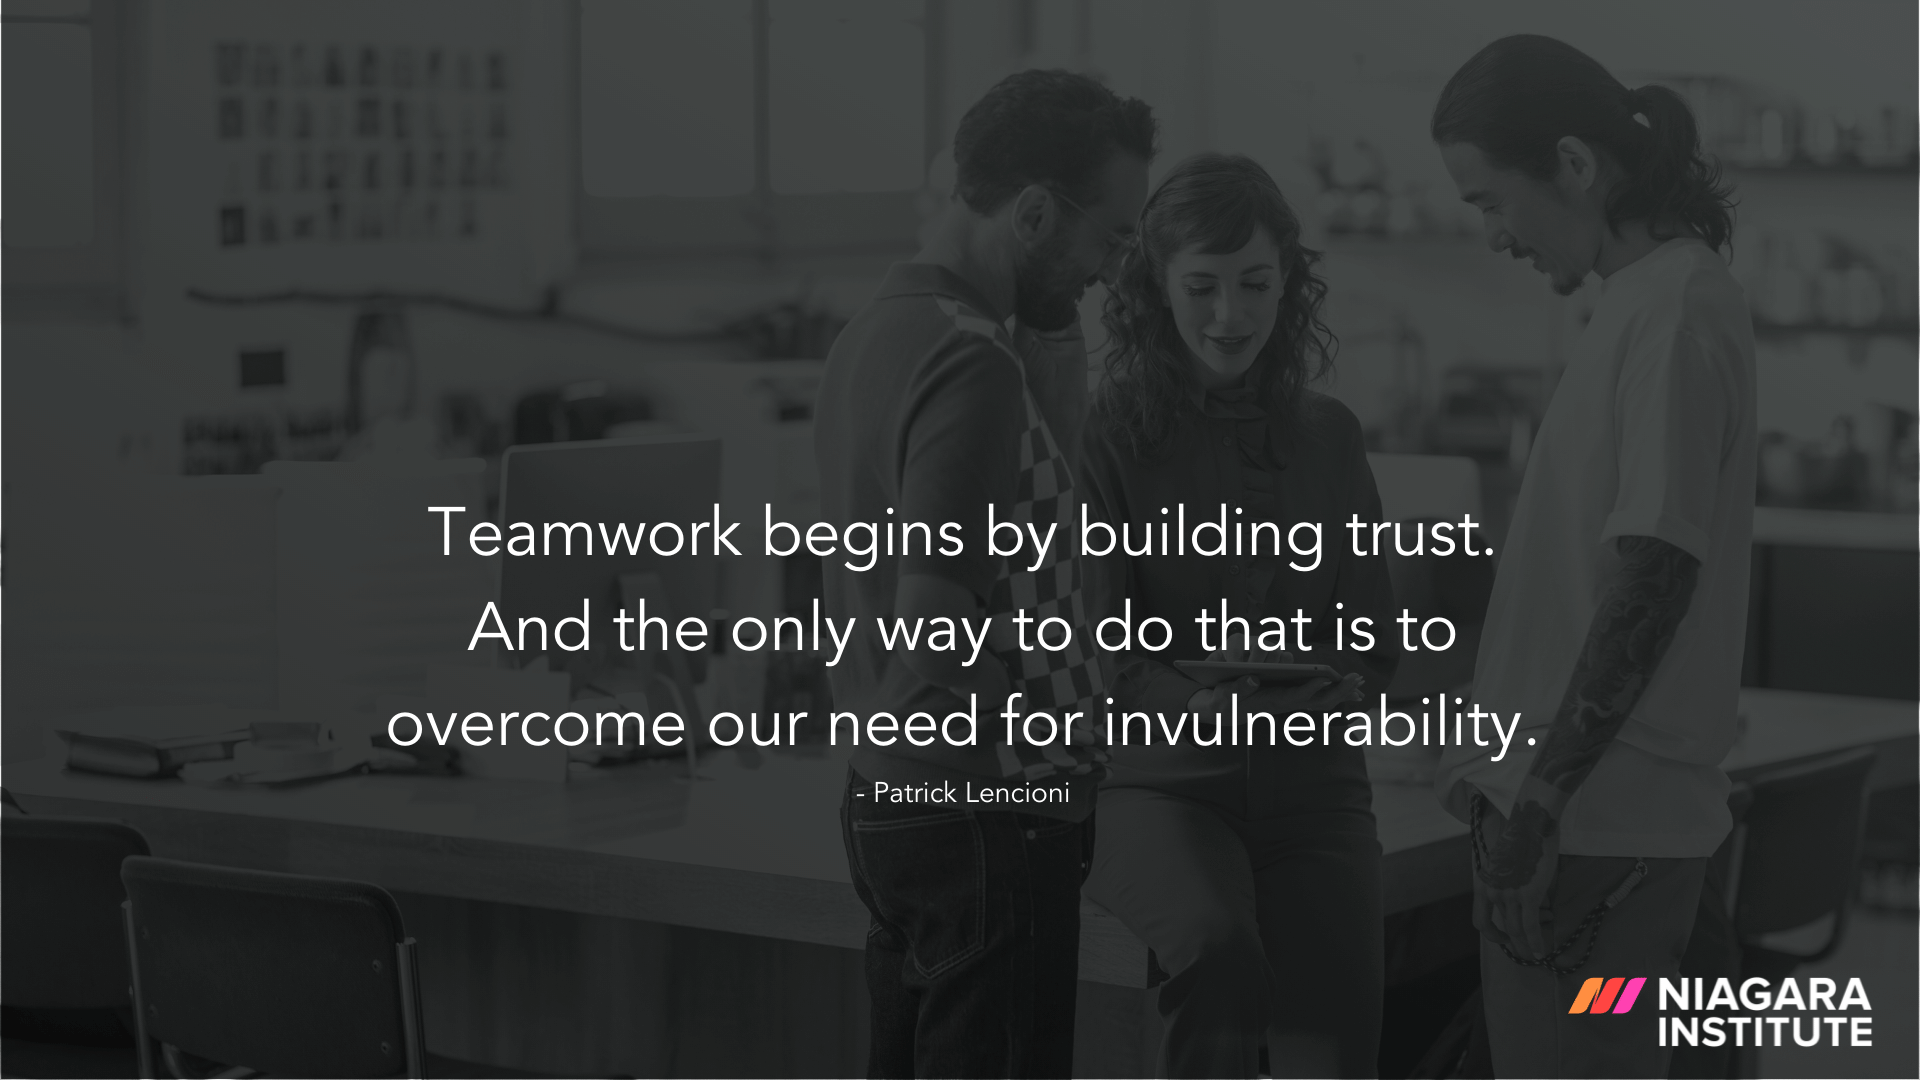 Teamwork begins by building trust. And the only way to do that is to overcome our need for invulnerability. – Patrick Lencioni